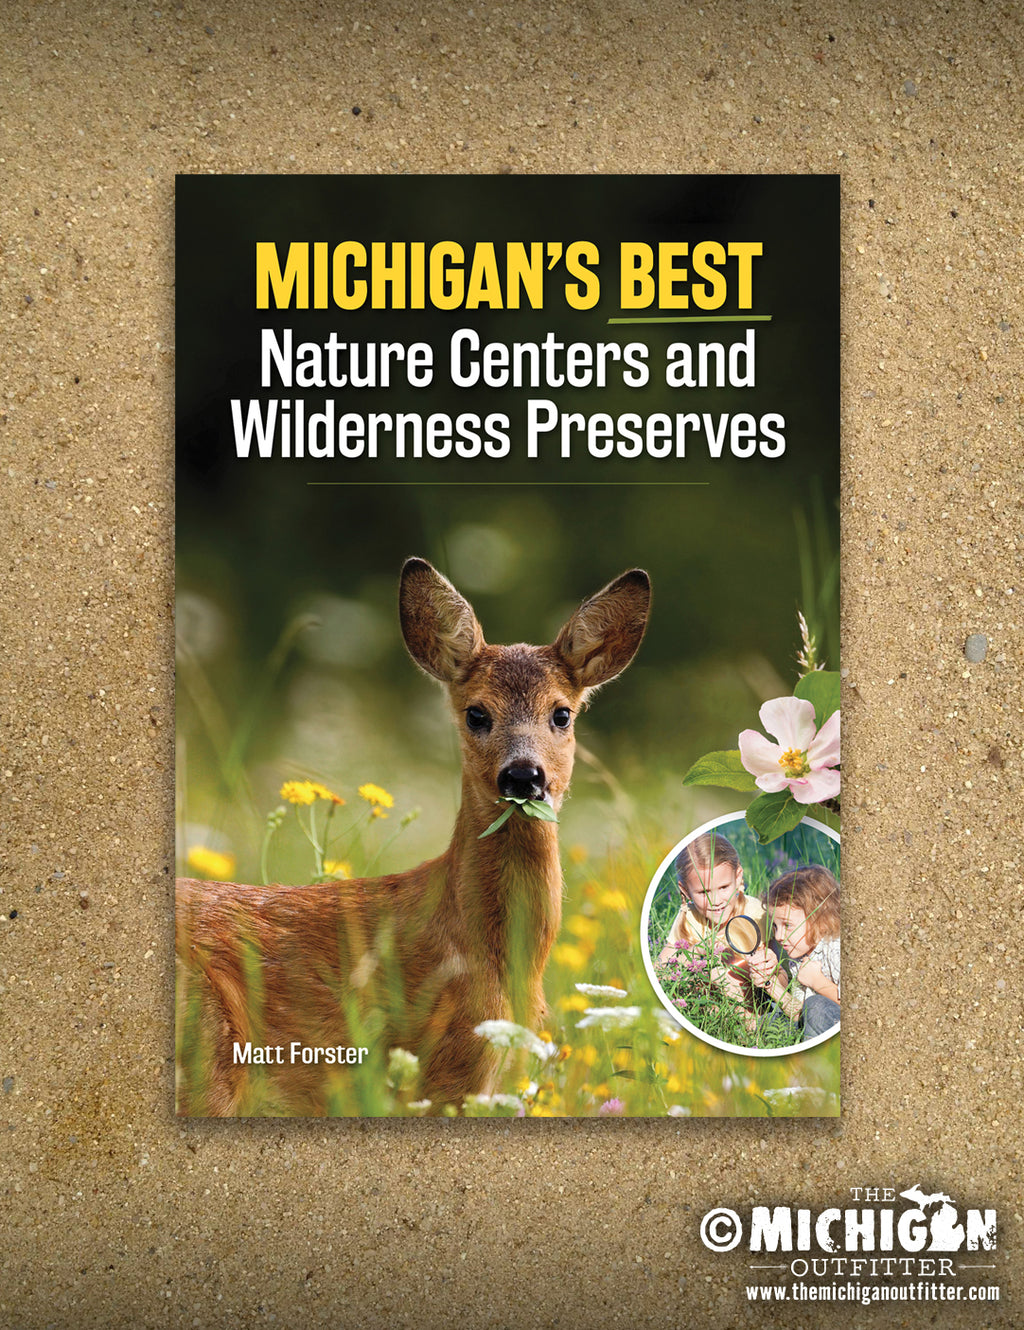 Michigan's Best Nature Centers and Wilderness Preserves